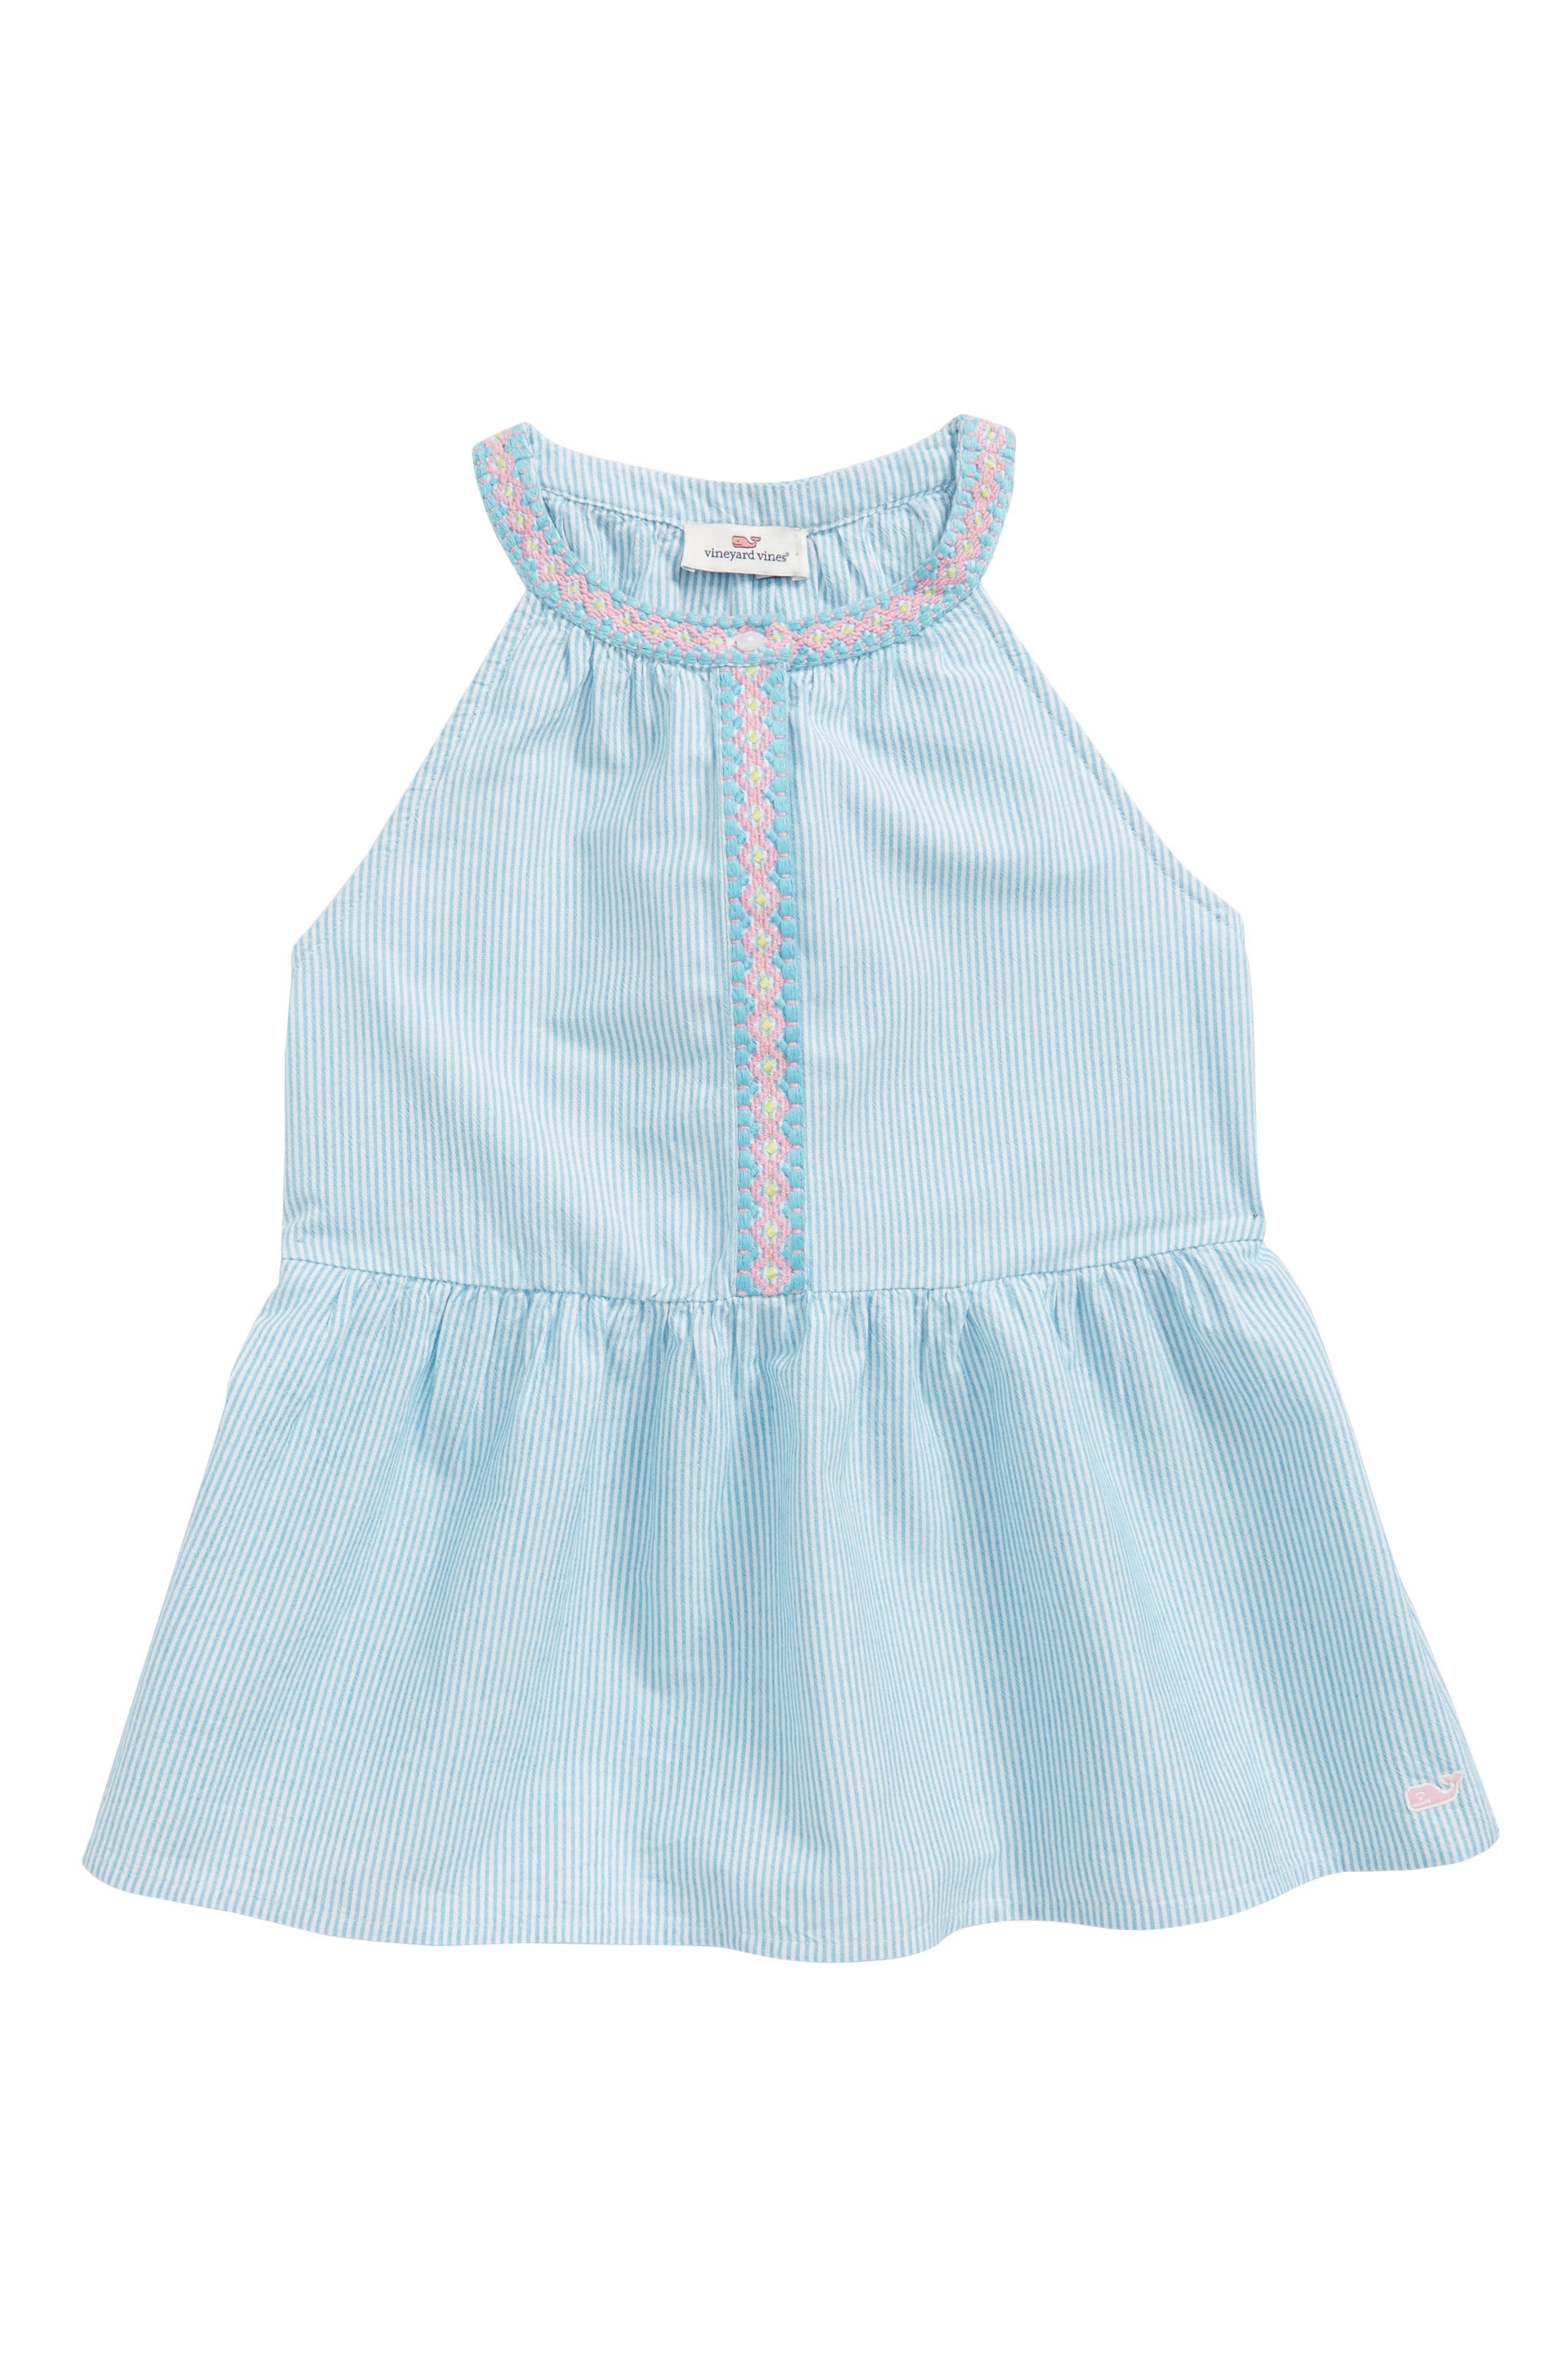 Embroidered Stripe Top,                             Main thumbnail 1, color,                             Turquoise